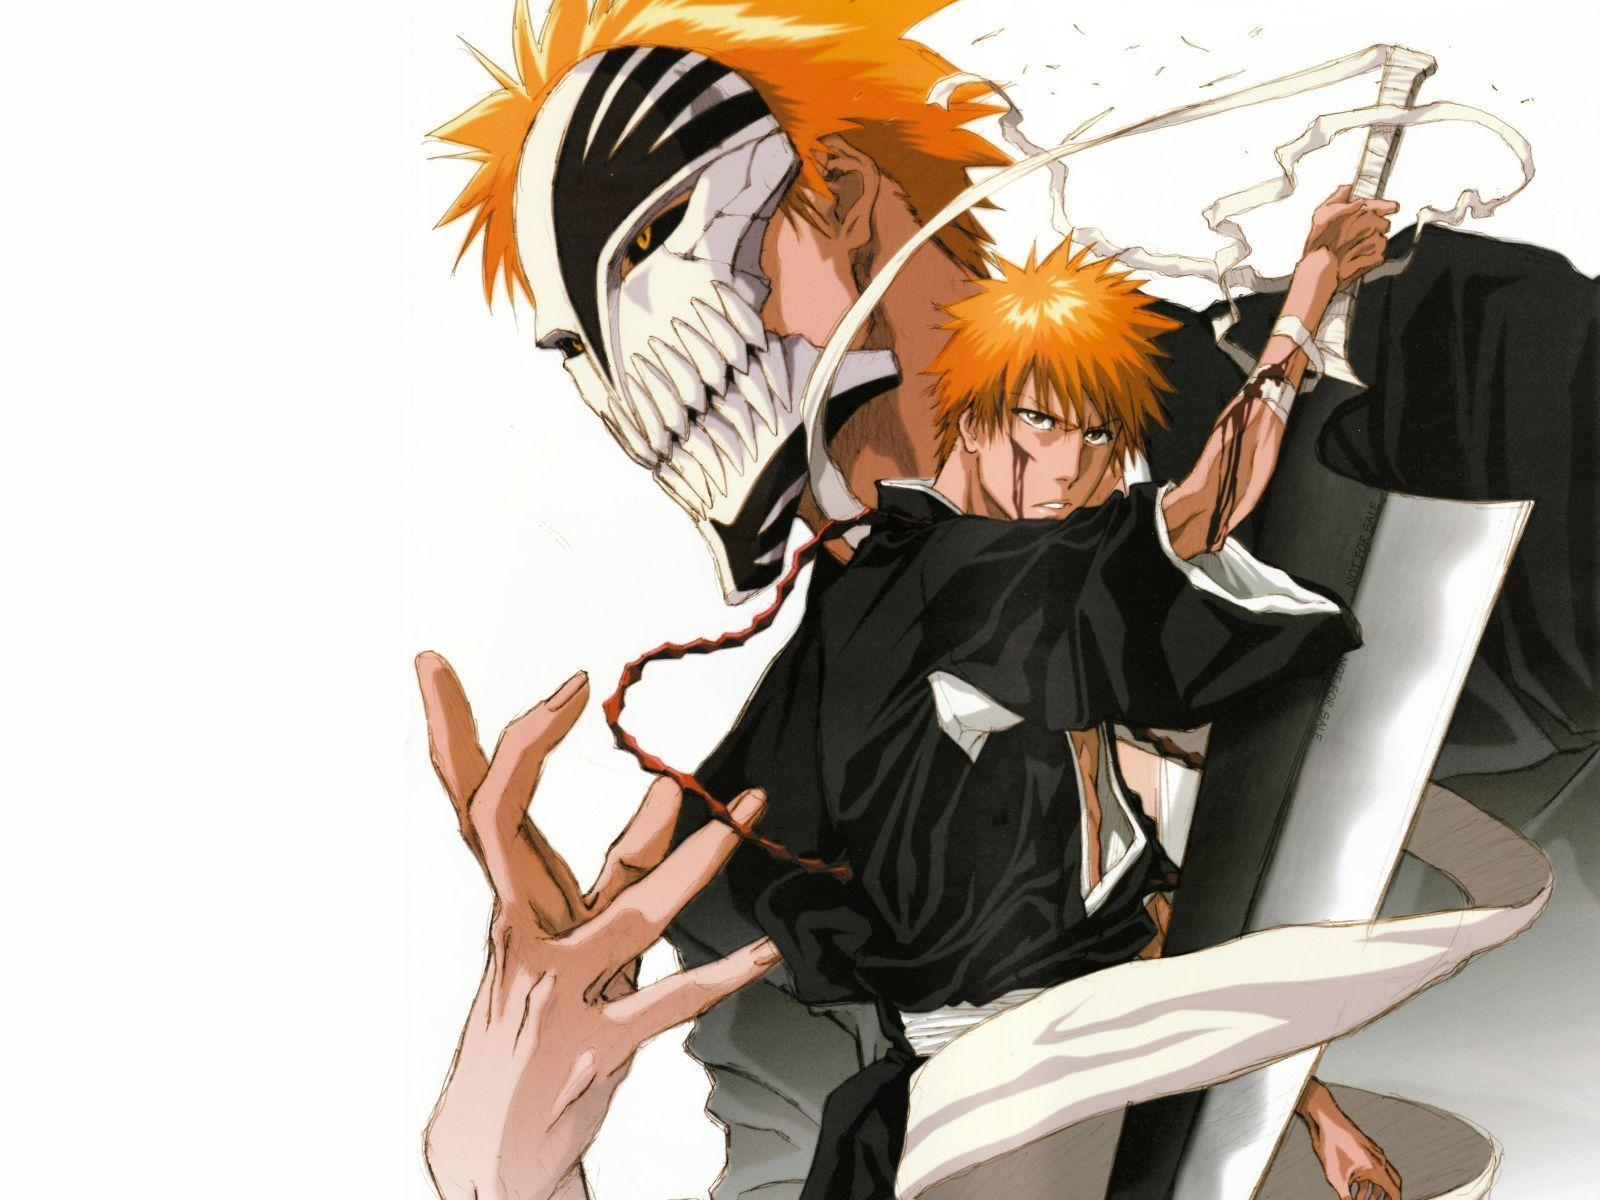 Hollow Ichigo, Wallpaper - Zerochan Anime Image Board